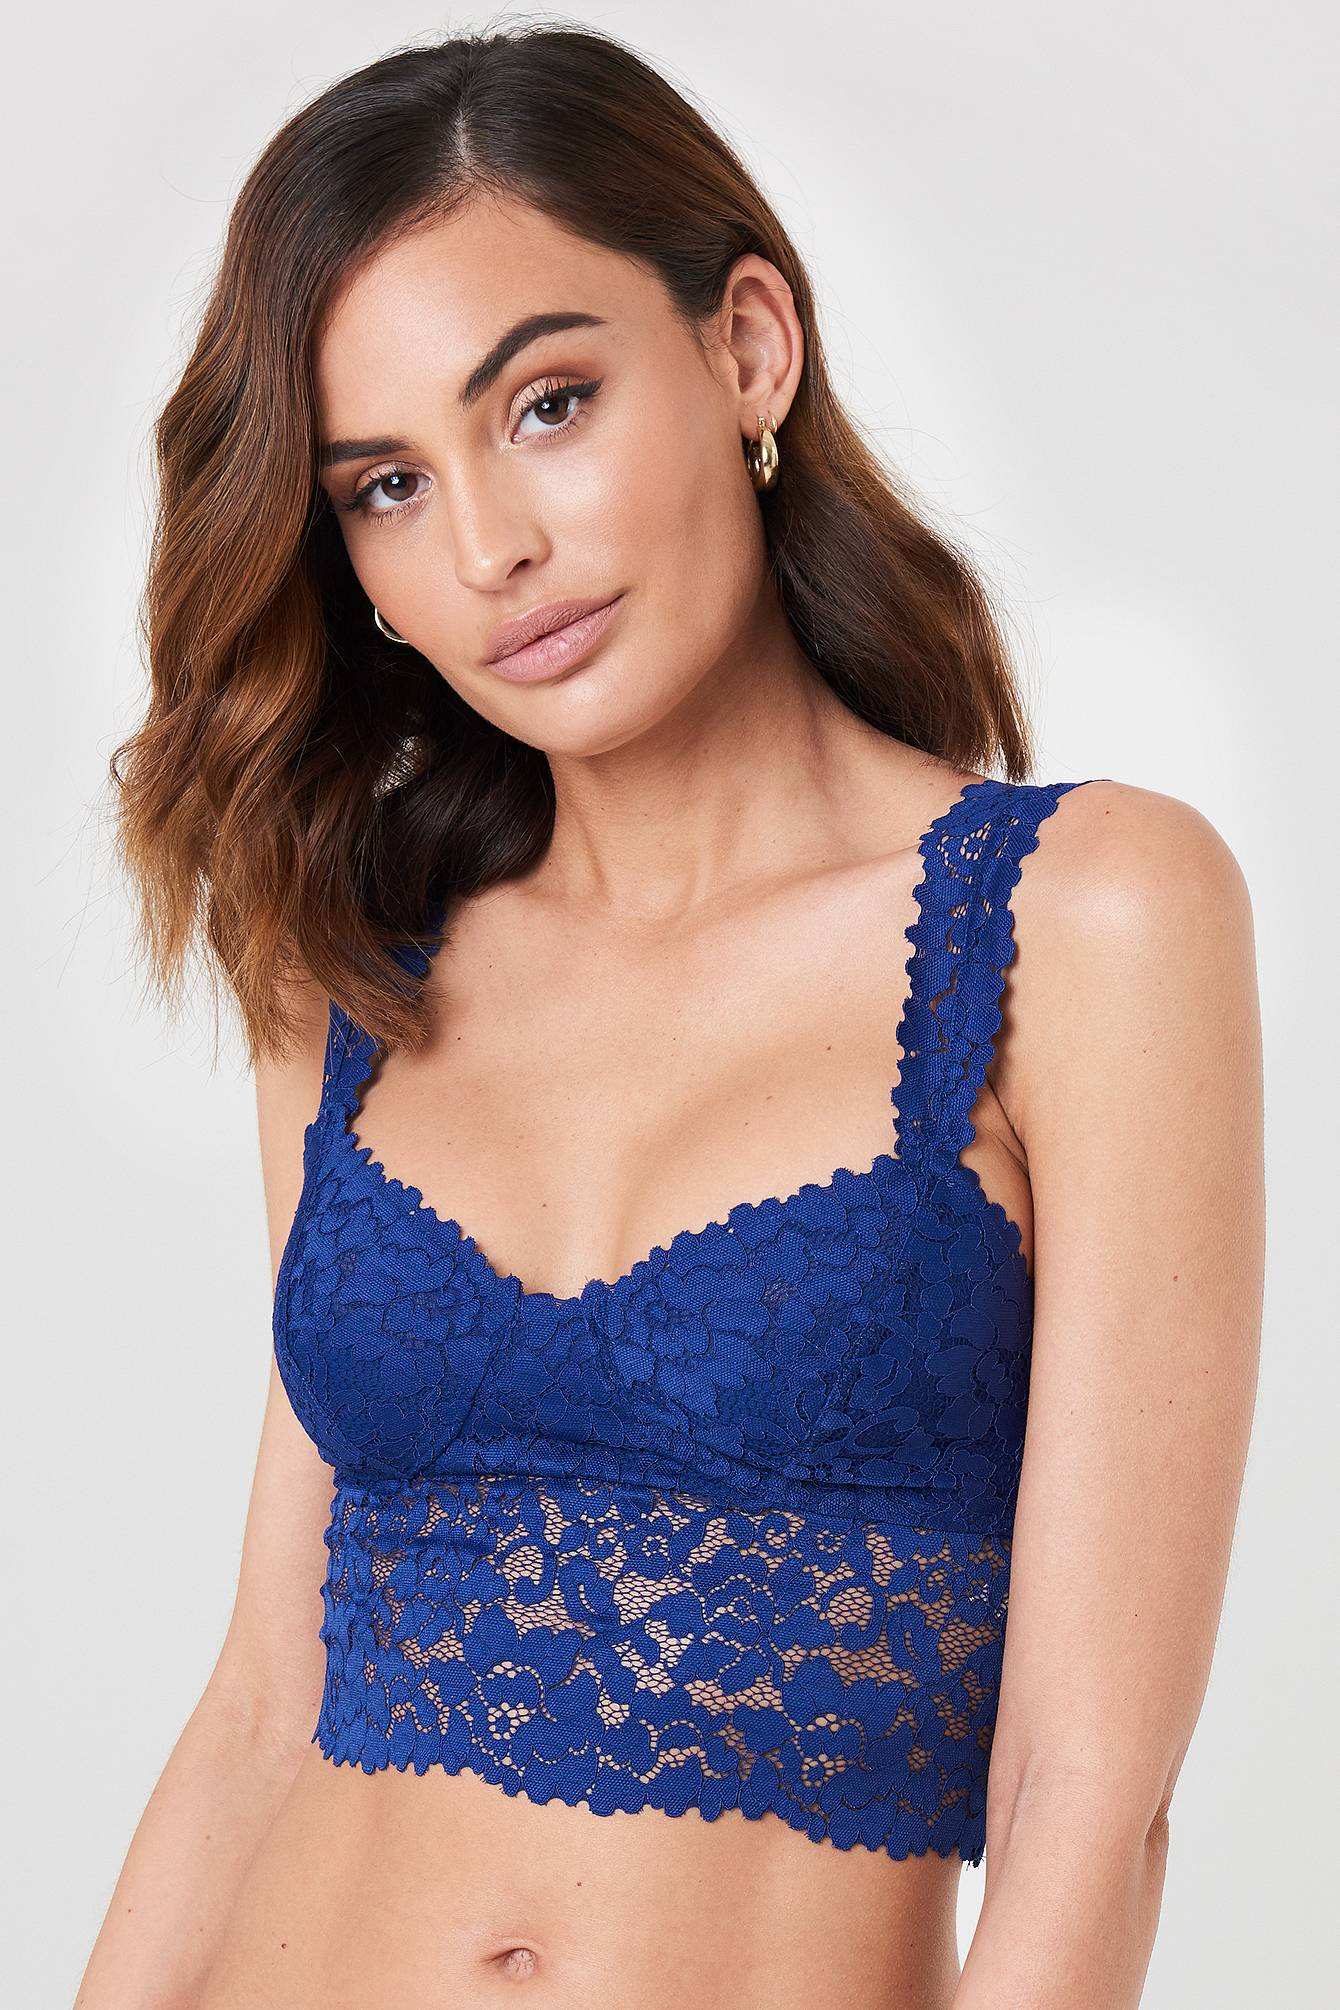 Free People Dream Away Lace Bra - Blue